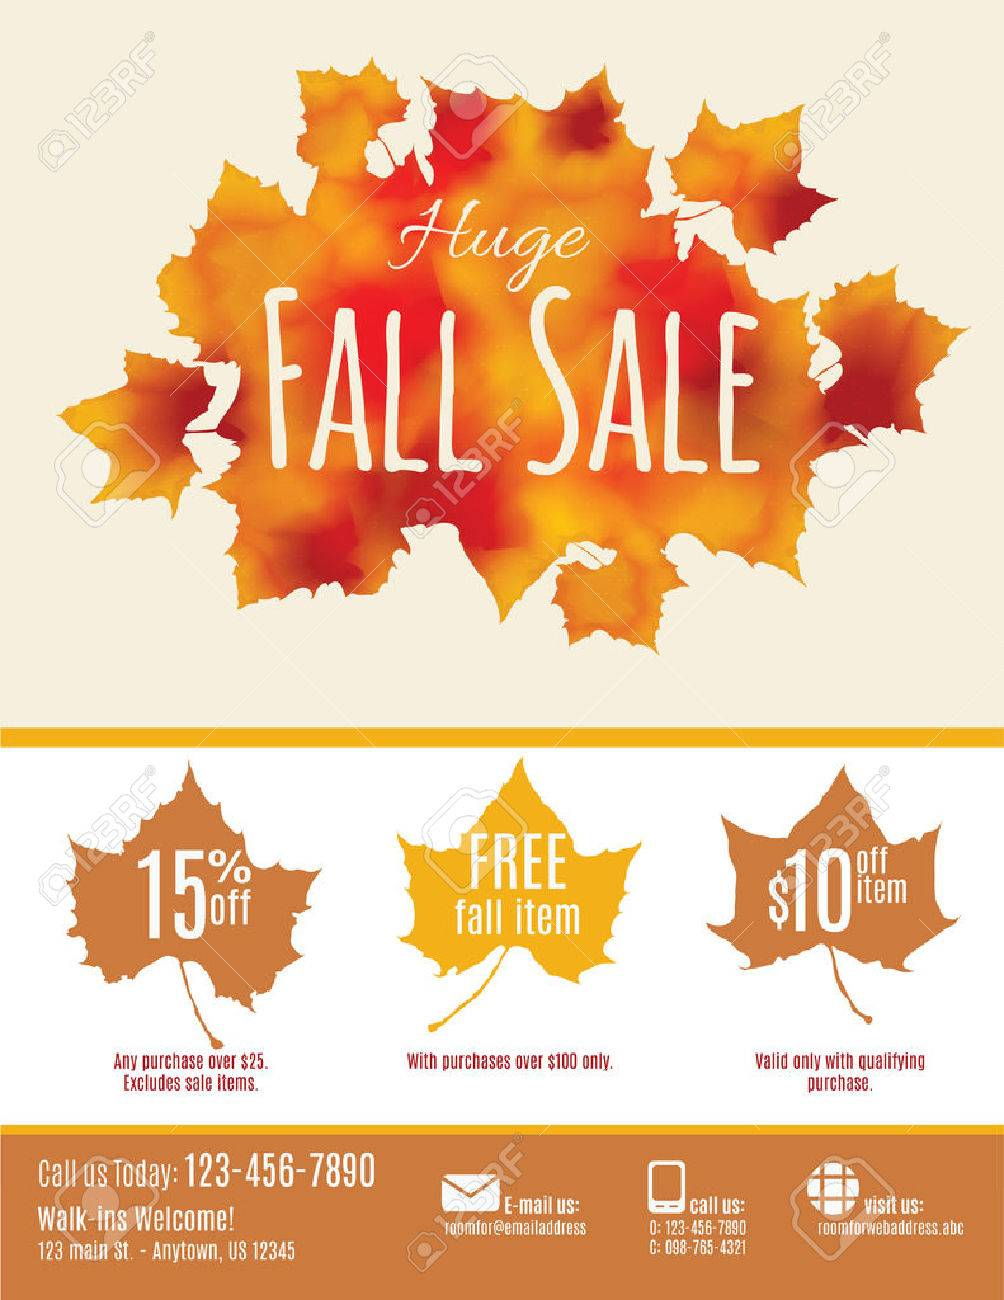 Fall Sale Flyer With Watercolor Fall Leaves Royalty Free Cliparts ...